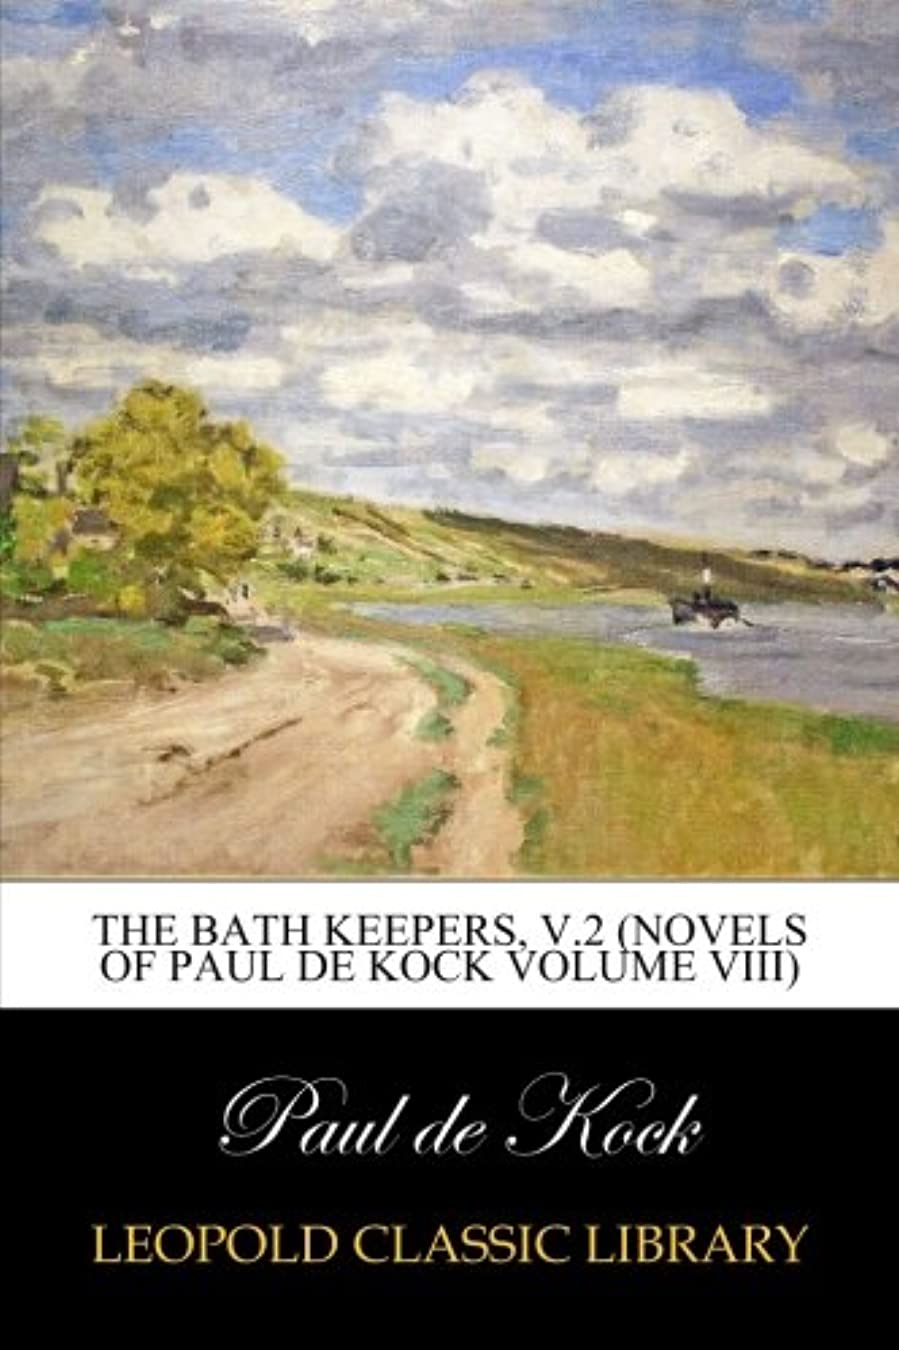 故意の平行知覚的The Bath Keepers, v.2 (Novels of Paul de Kock Volume VIII)